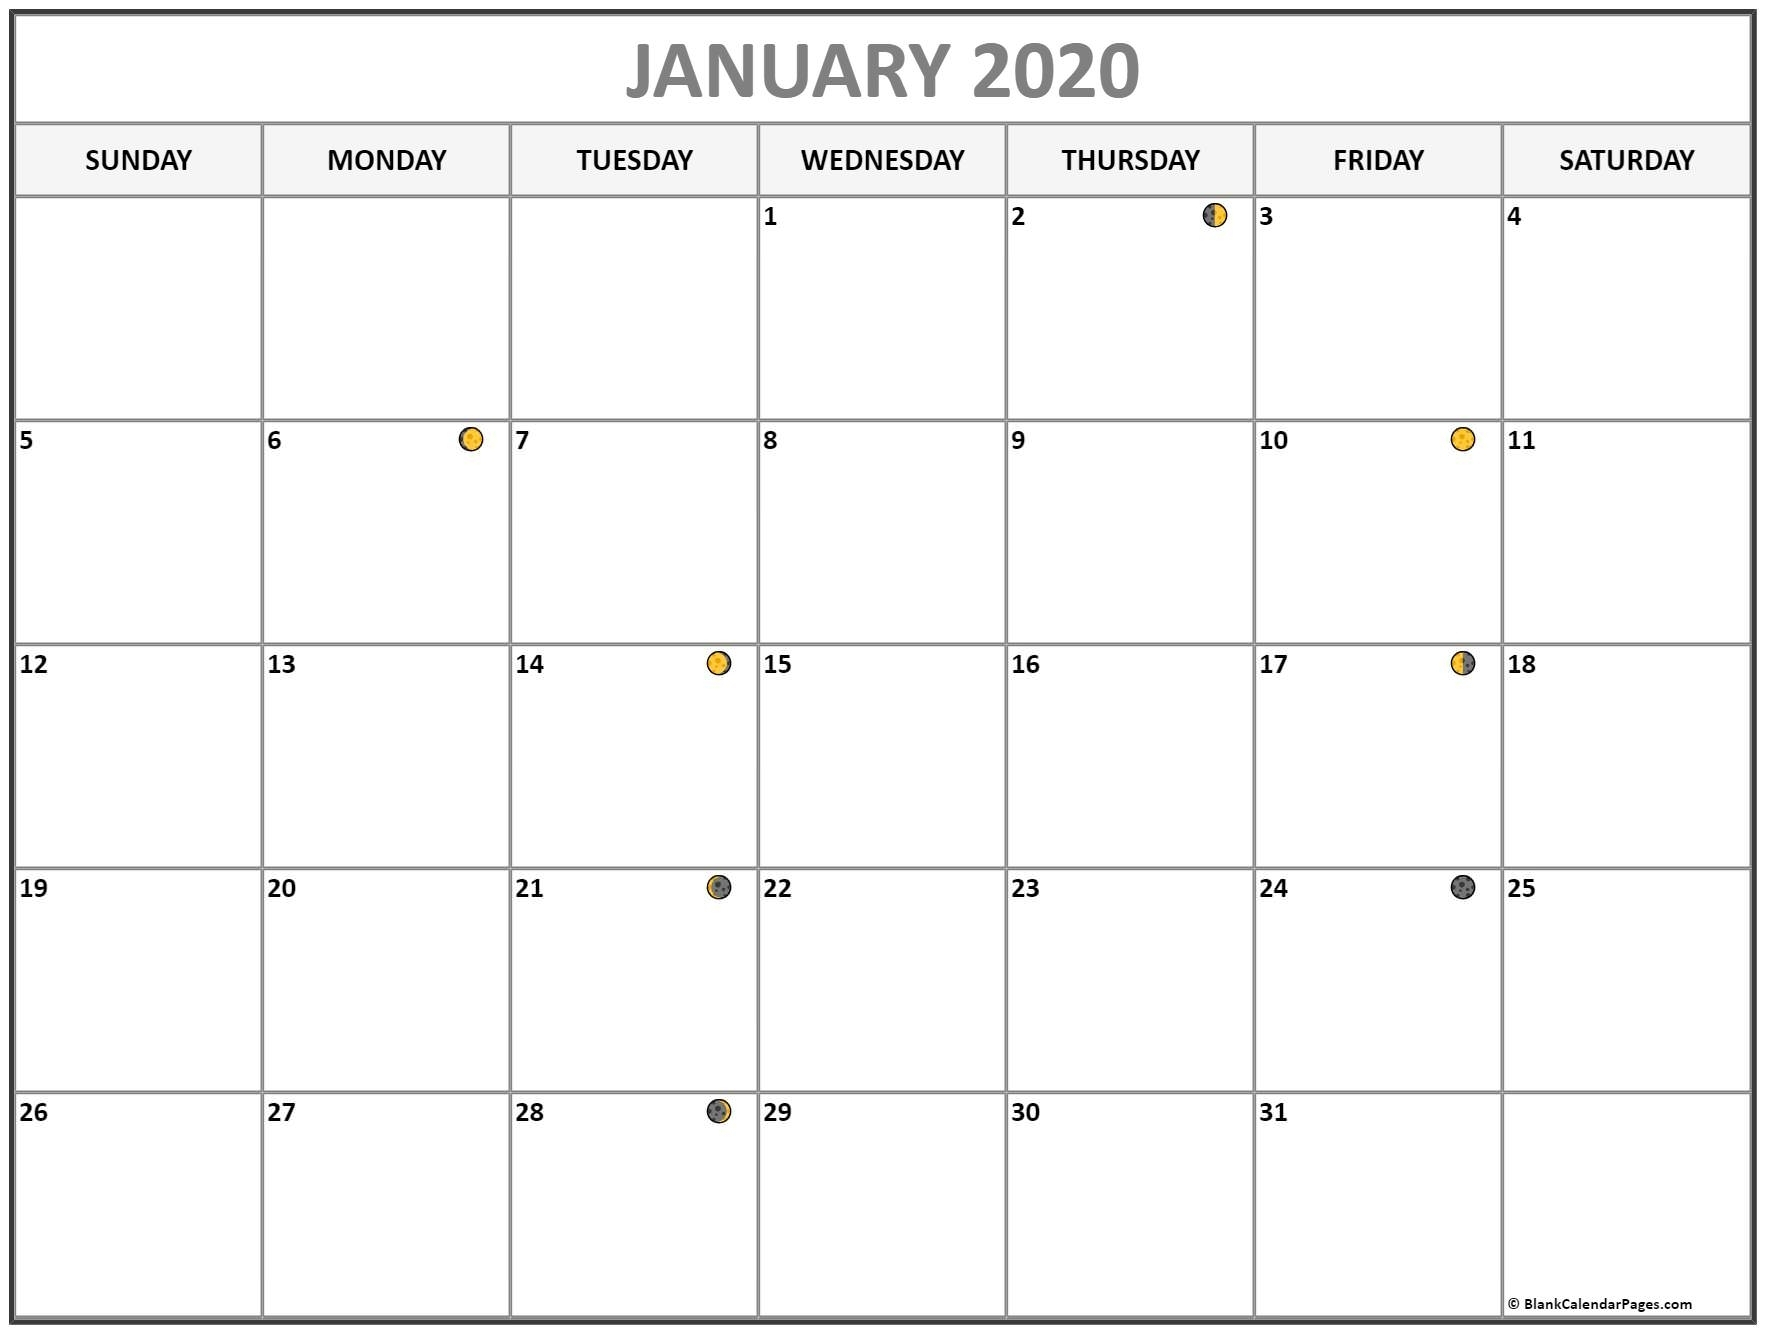 Moon Phase Calendar 2020 Calendar With